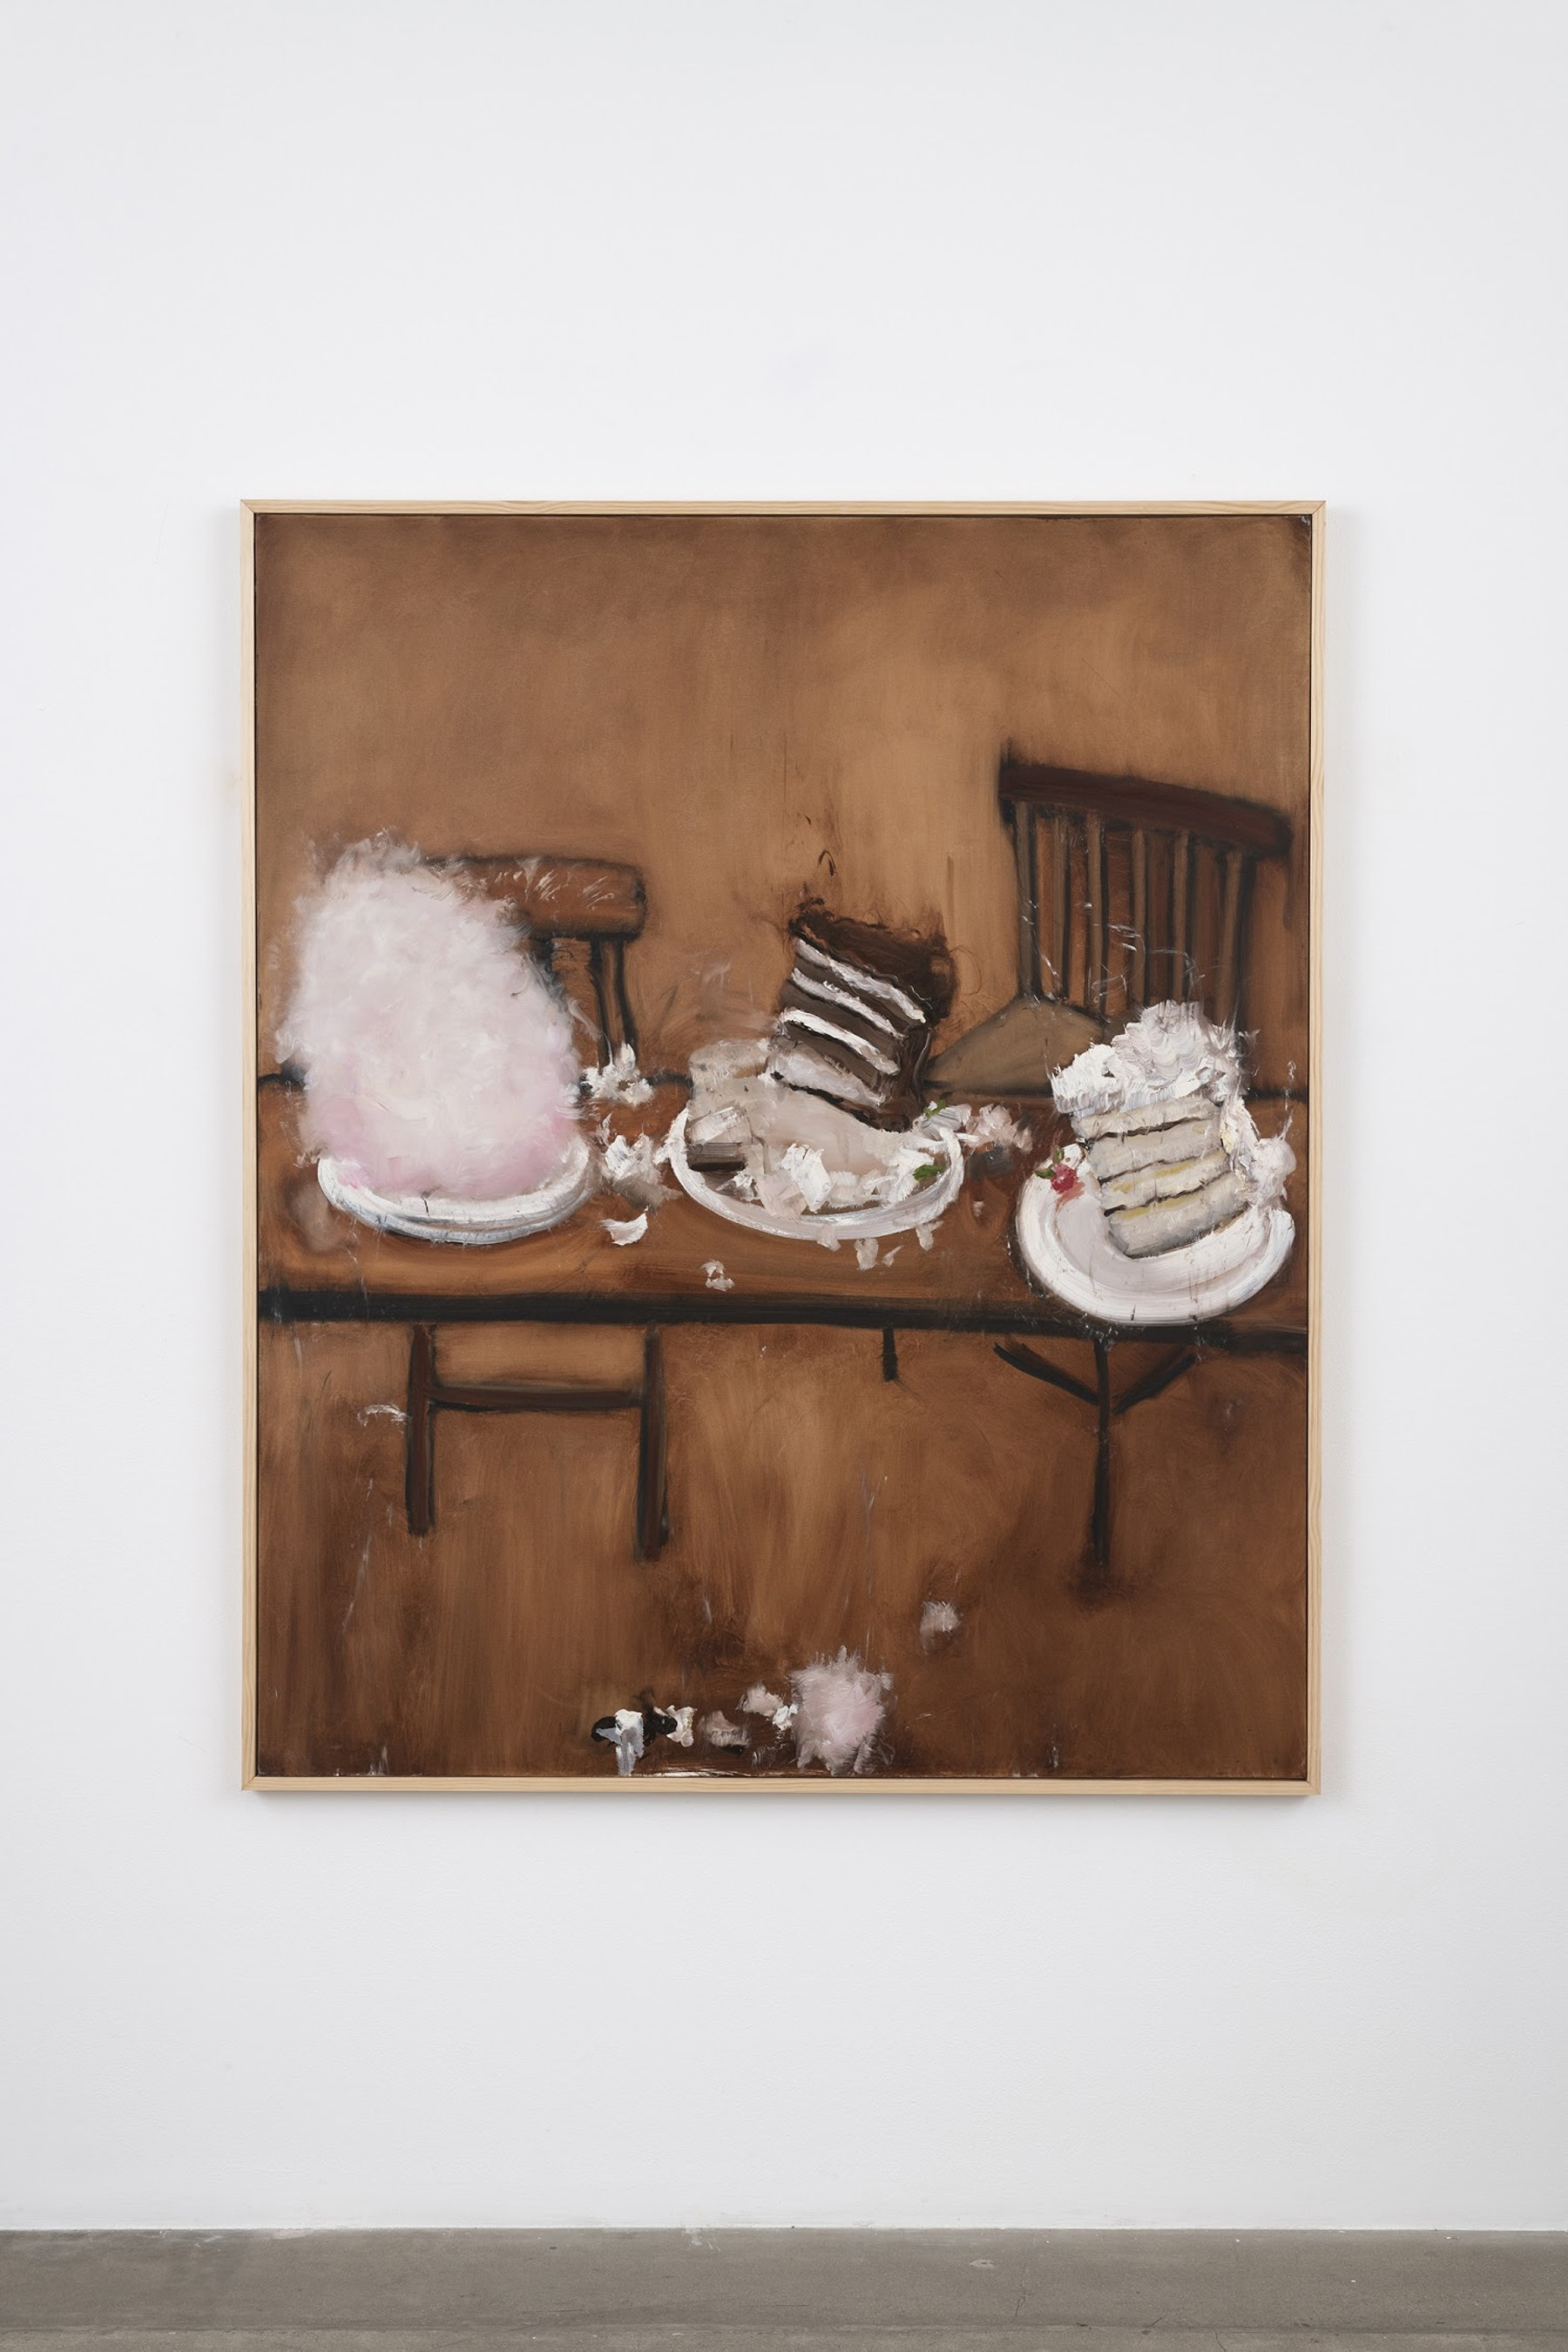 "Kim Dingle ""And Cake,"" 2007 Oil on canvas 73.5 x 61.5 x 1.5"" [HxWxD] (186.69 x 156.21 x 3.81 cm) Inventory #DIN257 Courtesy of the artist and Vielmetter Los Angeles Photo credit: Jeff McLane"